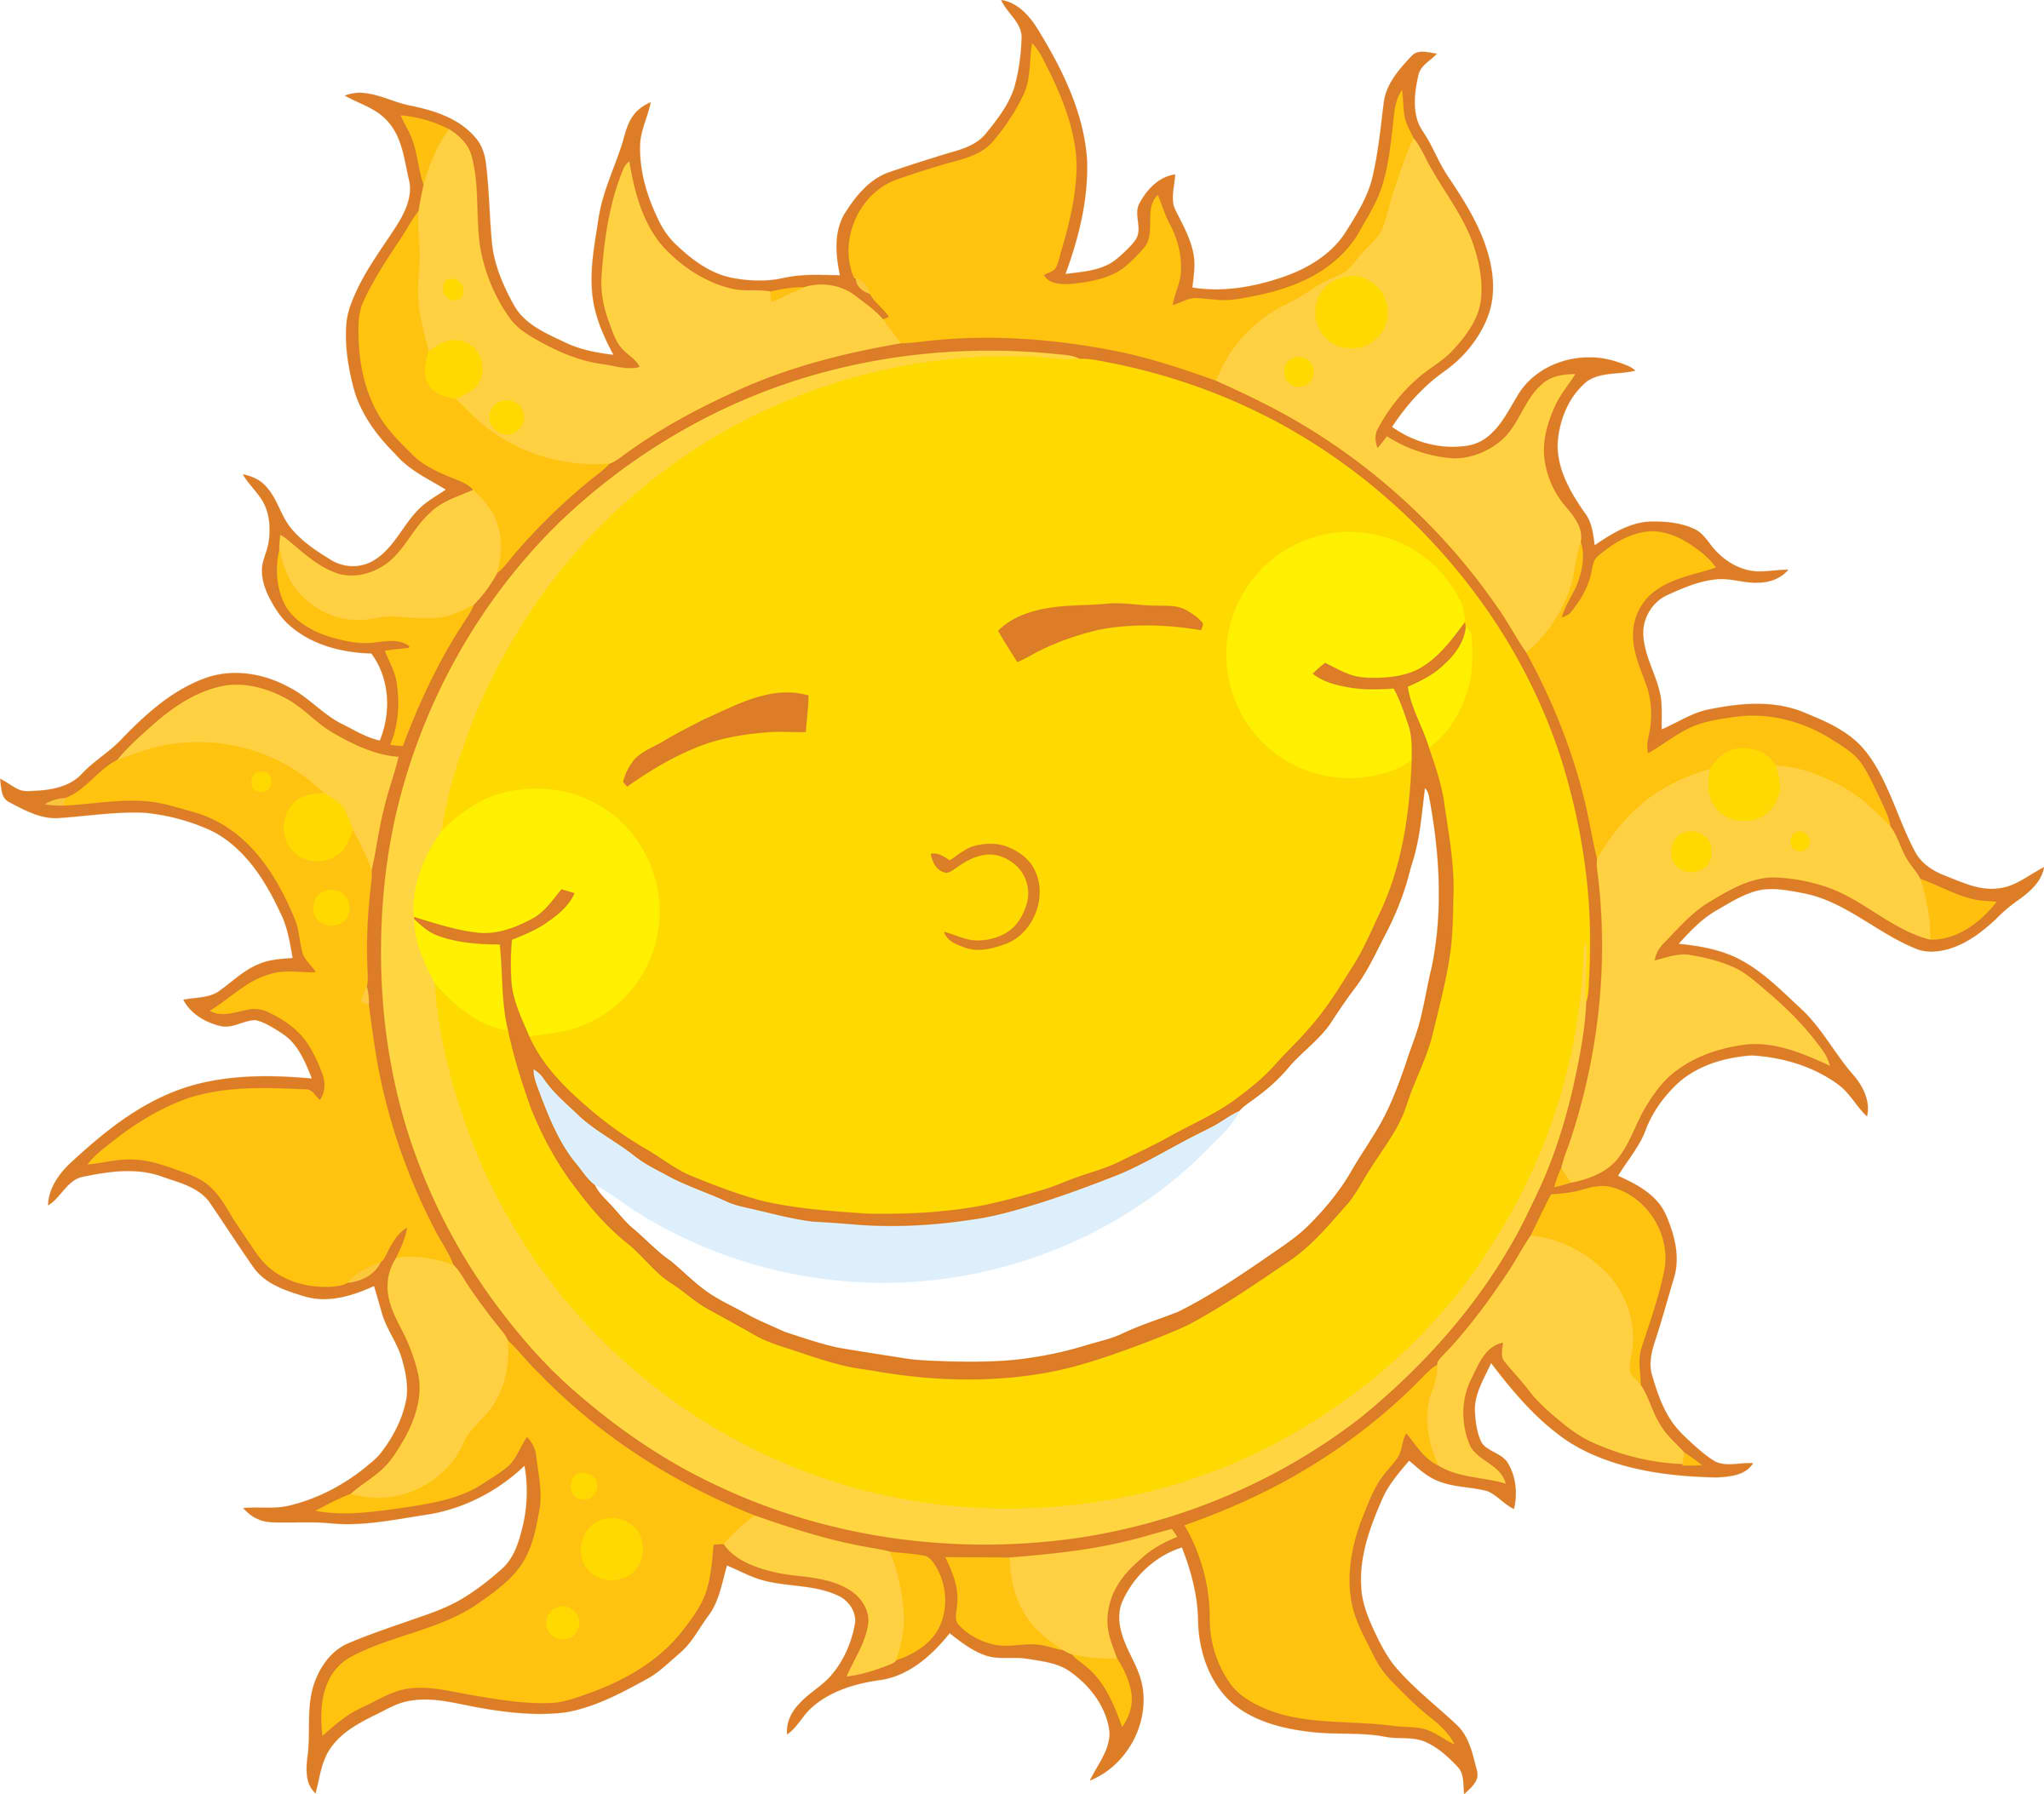 Free images of sun. Sunny clipart cartoon